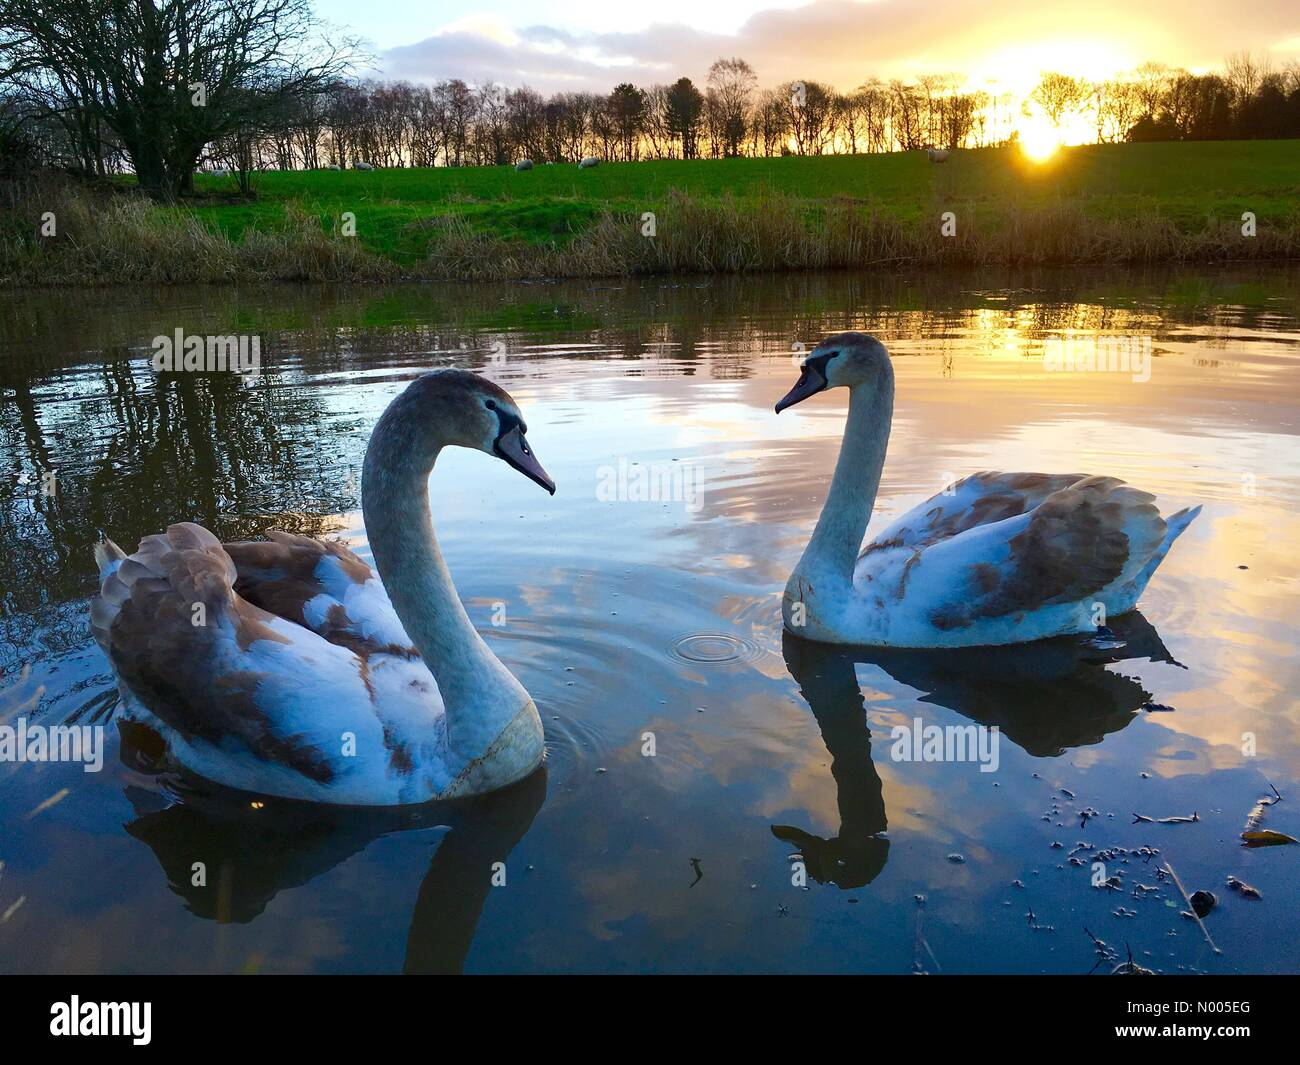 UK weather 29th December. Lovely sunrise over the Leeds and Liverpool canal at Adlington in Lancashire with swans - Stock Image